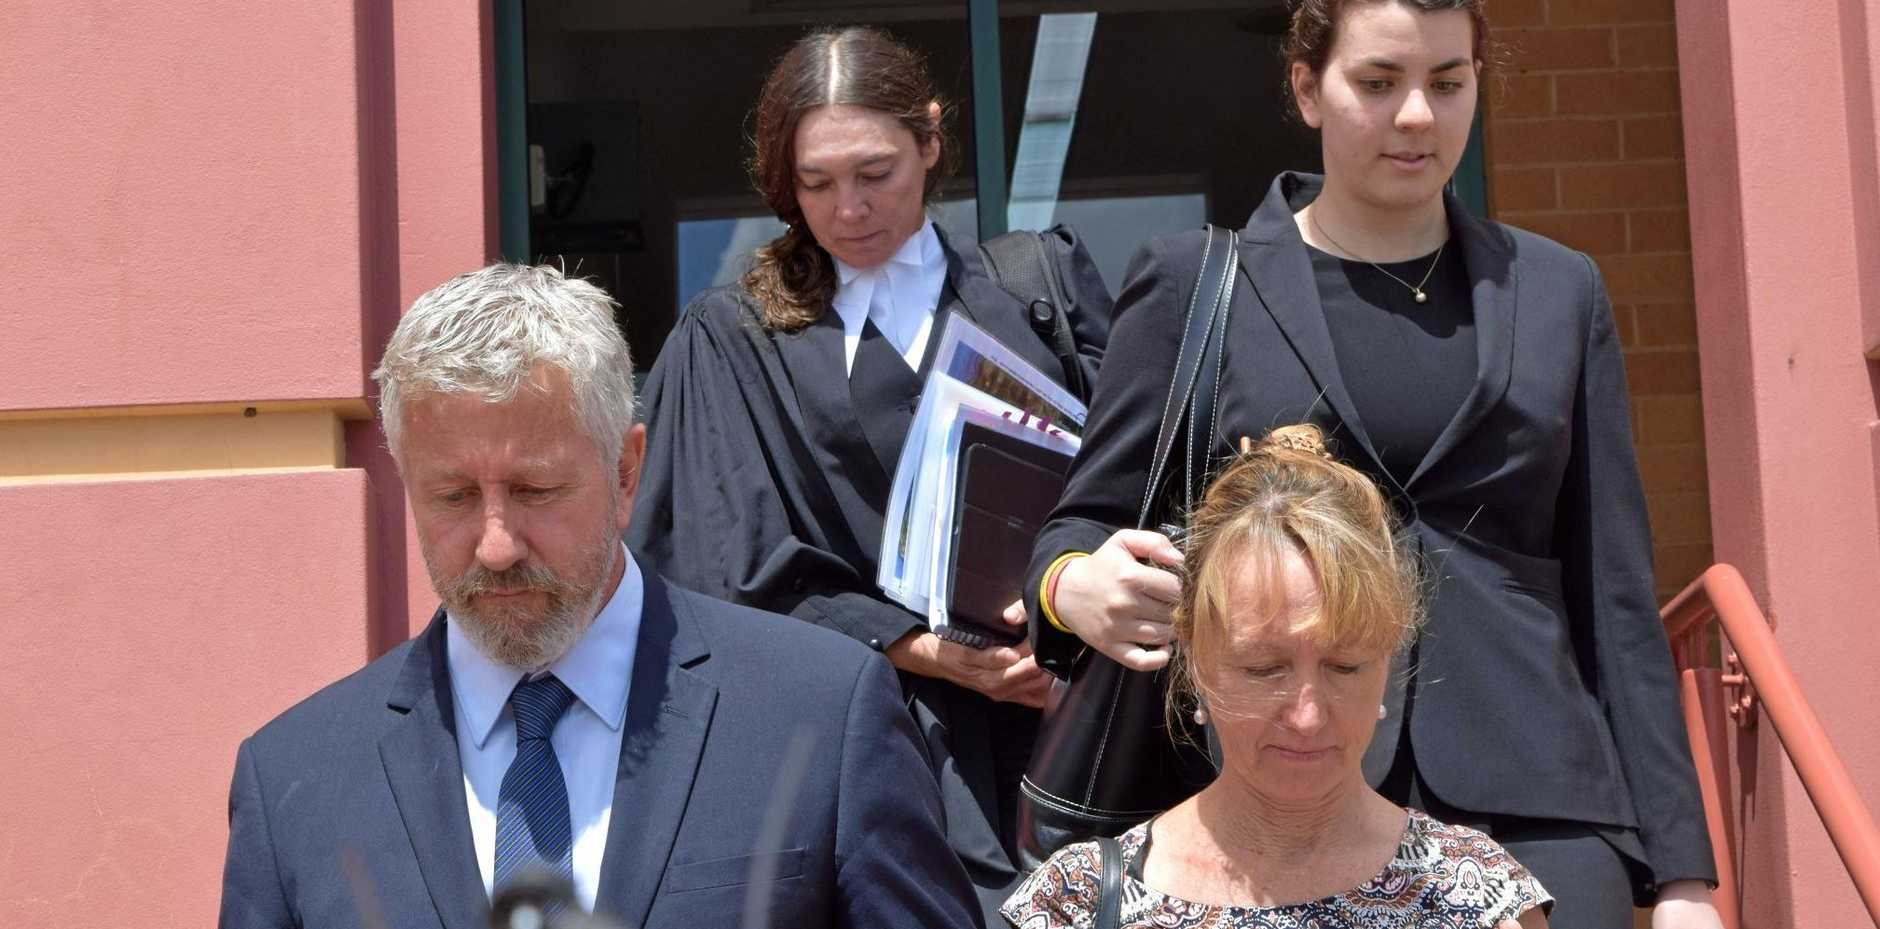 Pilot John Crumpton leaving Lismore court with his wife Leanne after an eight-day District Court trial in February.